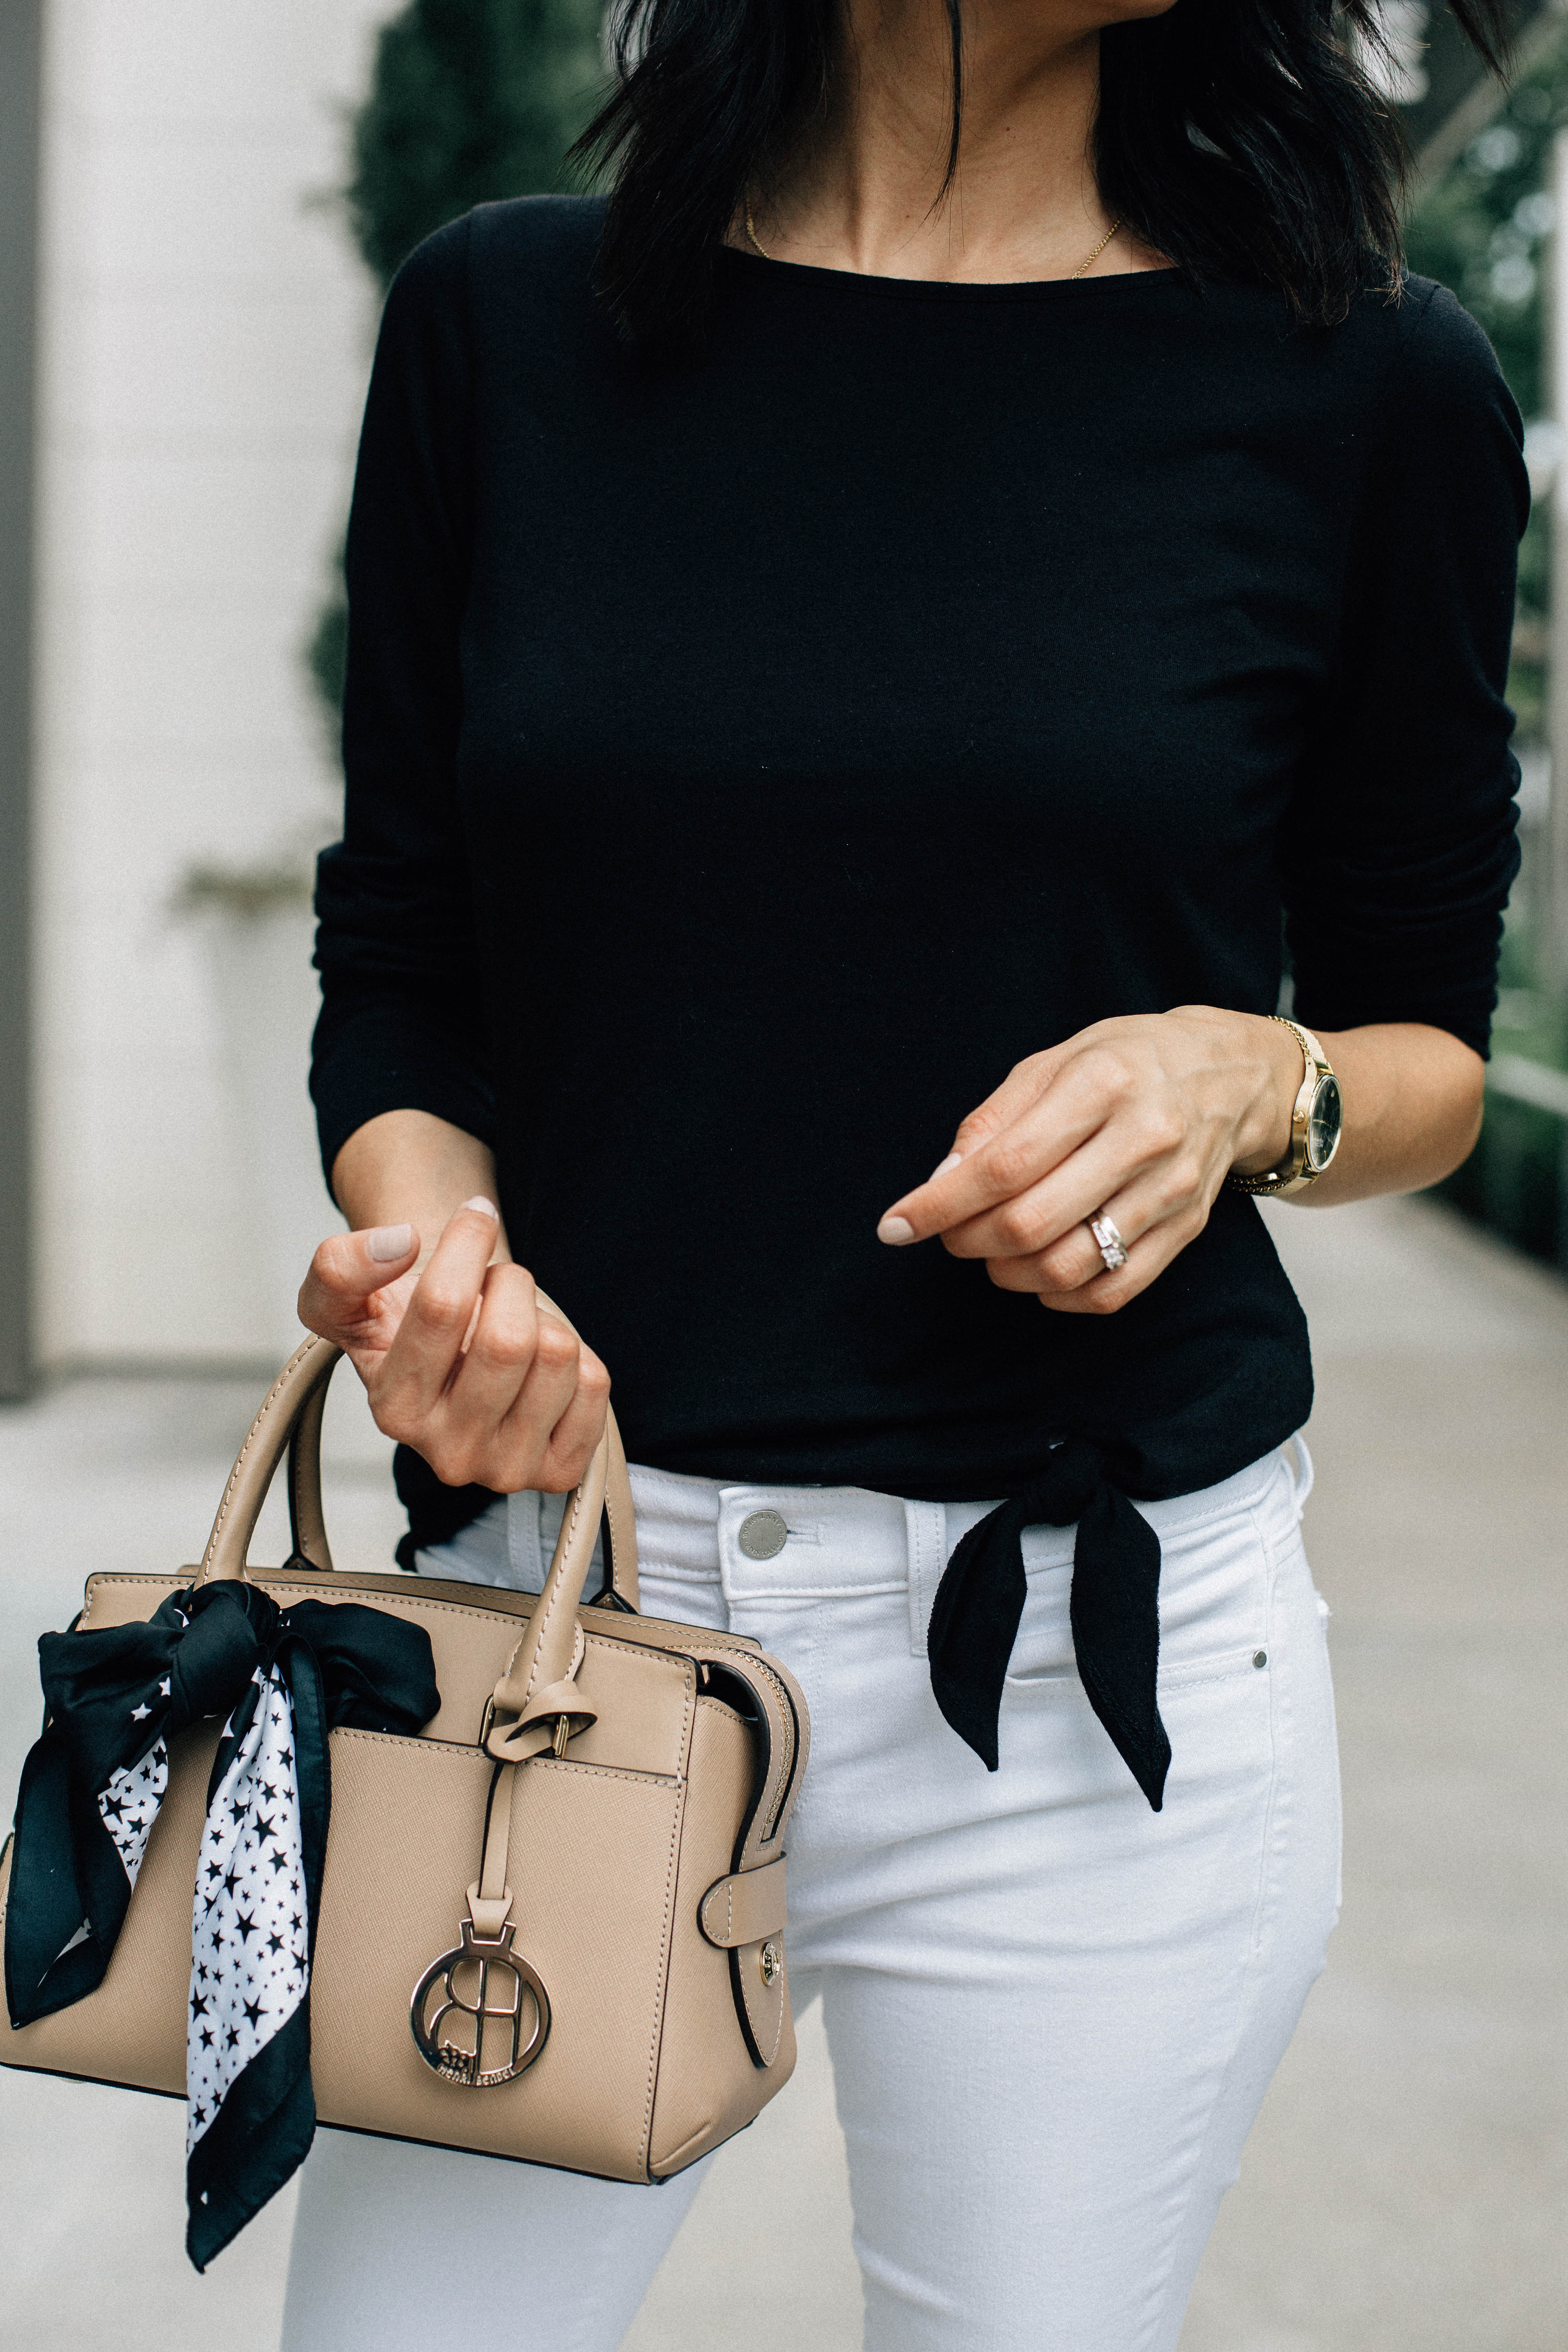 Lilly Beltran of Daily Craving blog wearing a Henri Bendel bag with a basic black tee